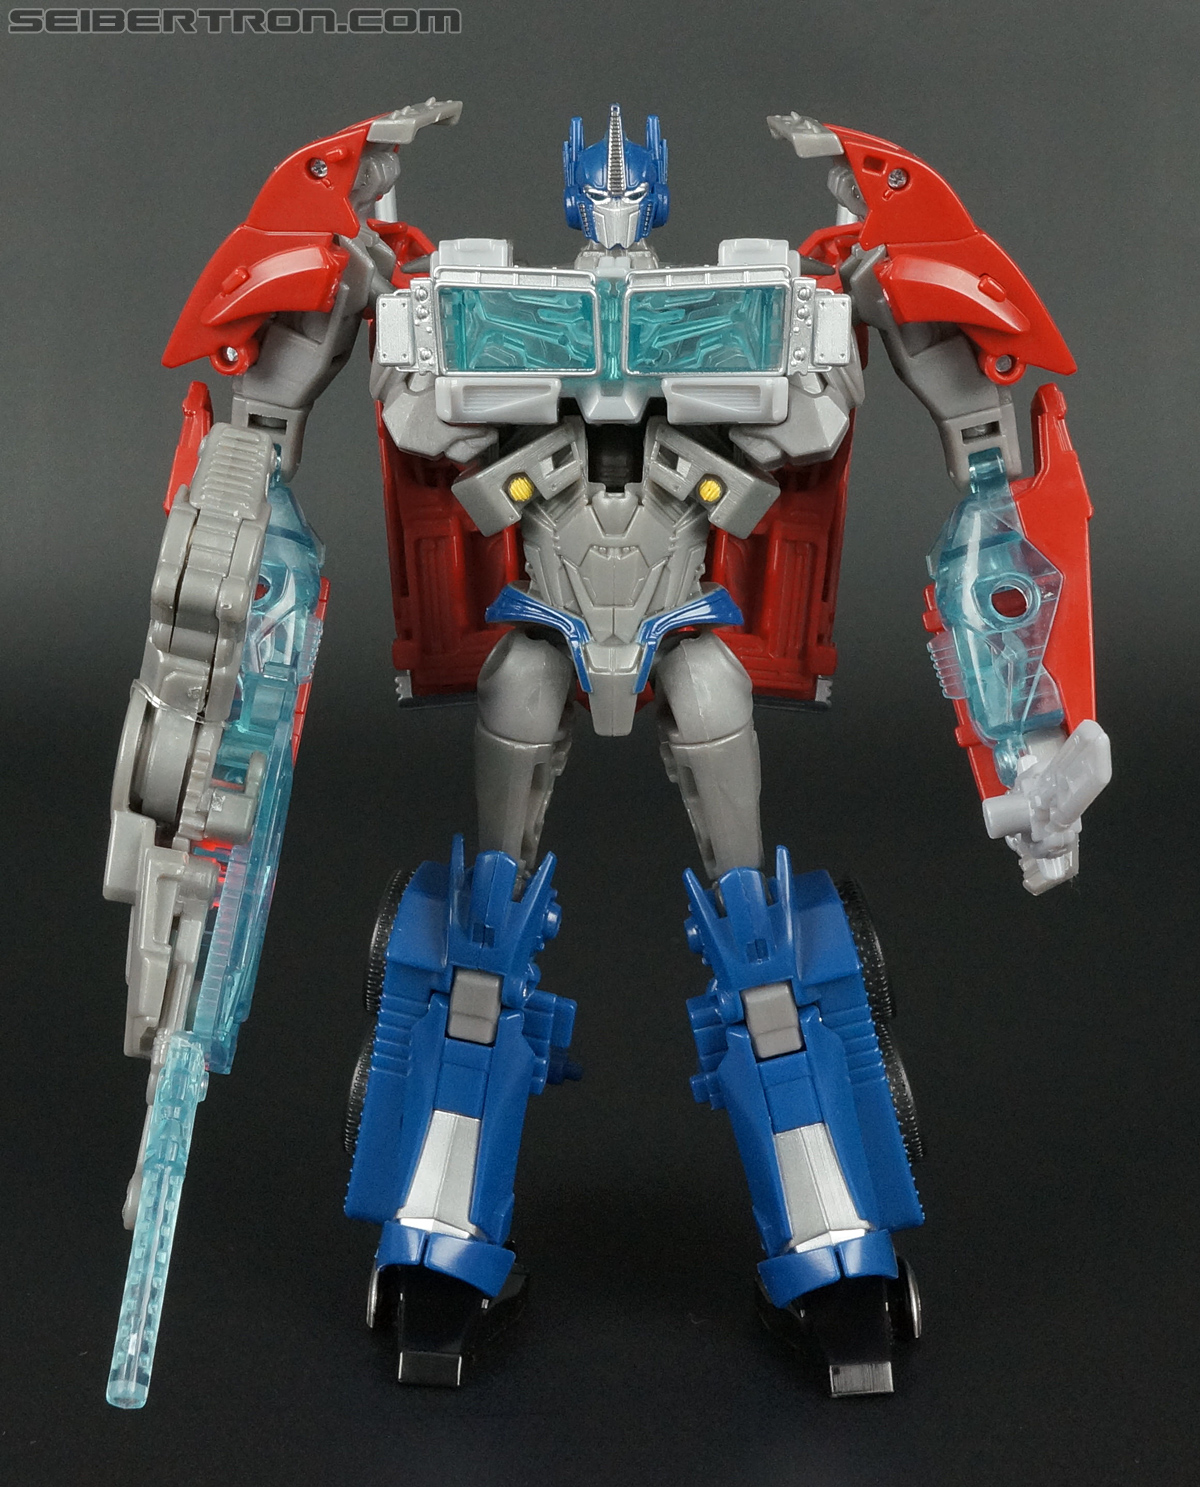 Transformers Prime: Robots In Disguise Optimus Prime (Image #87 of 176)